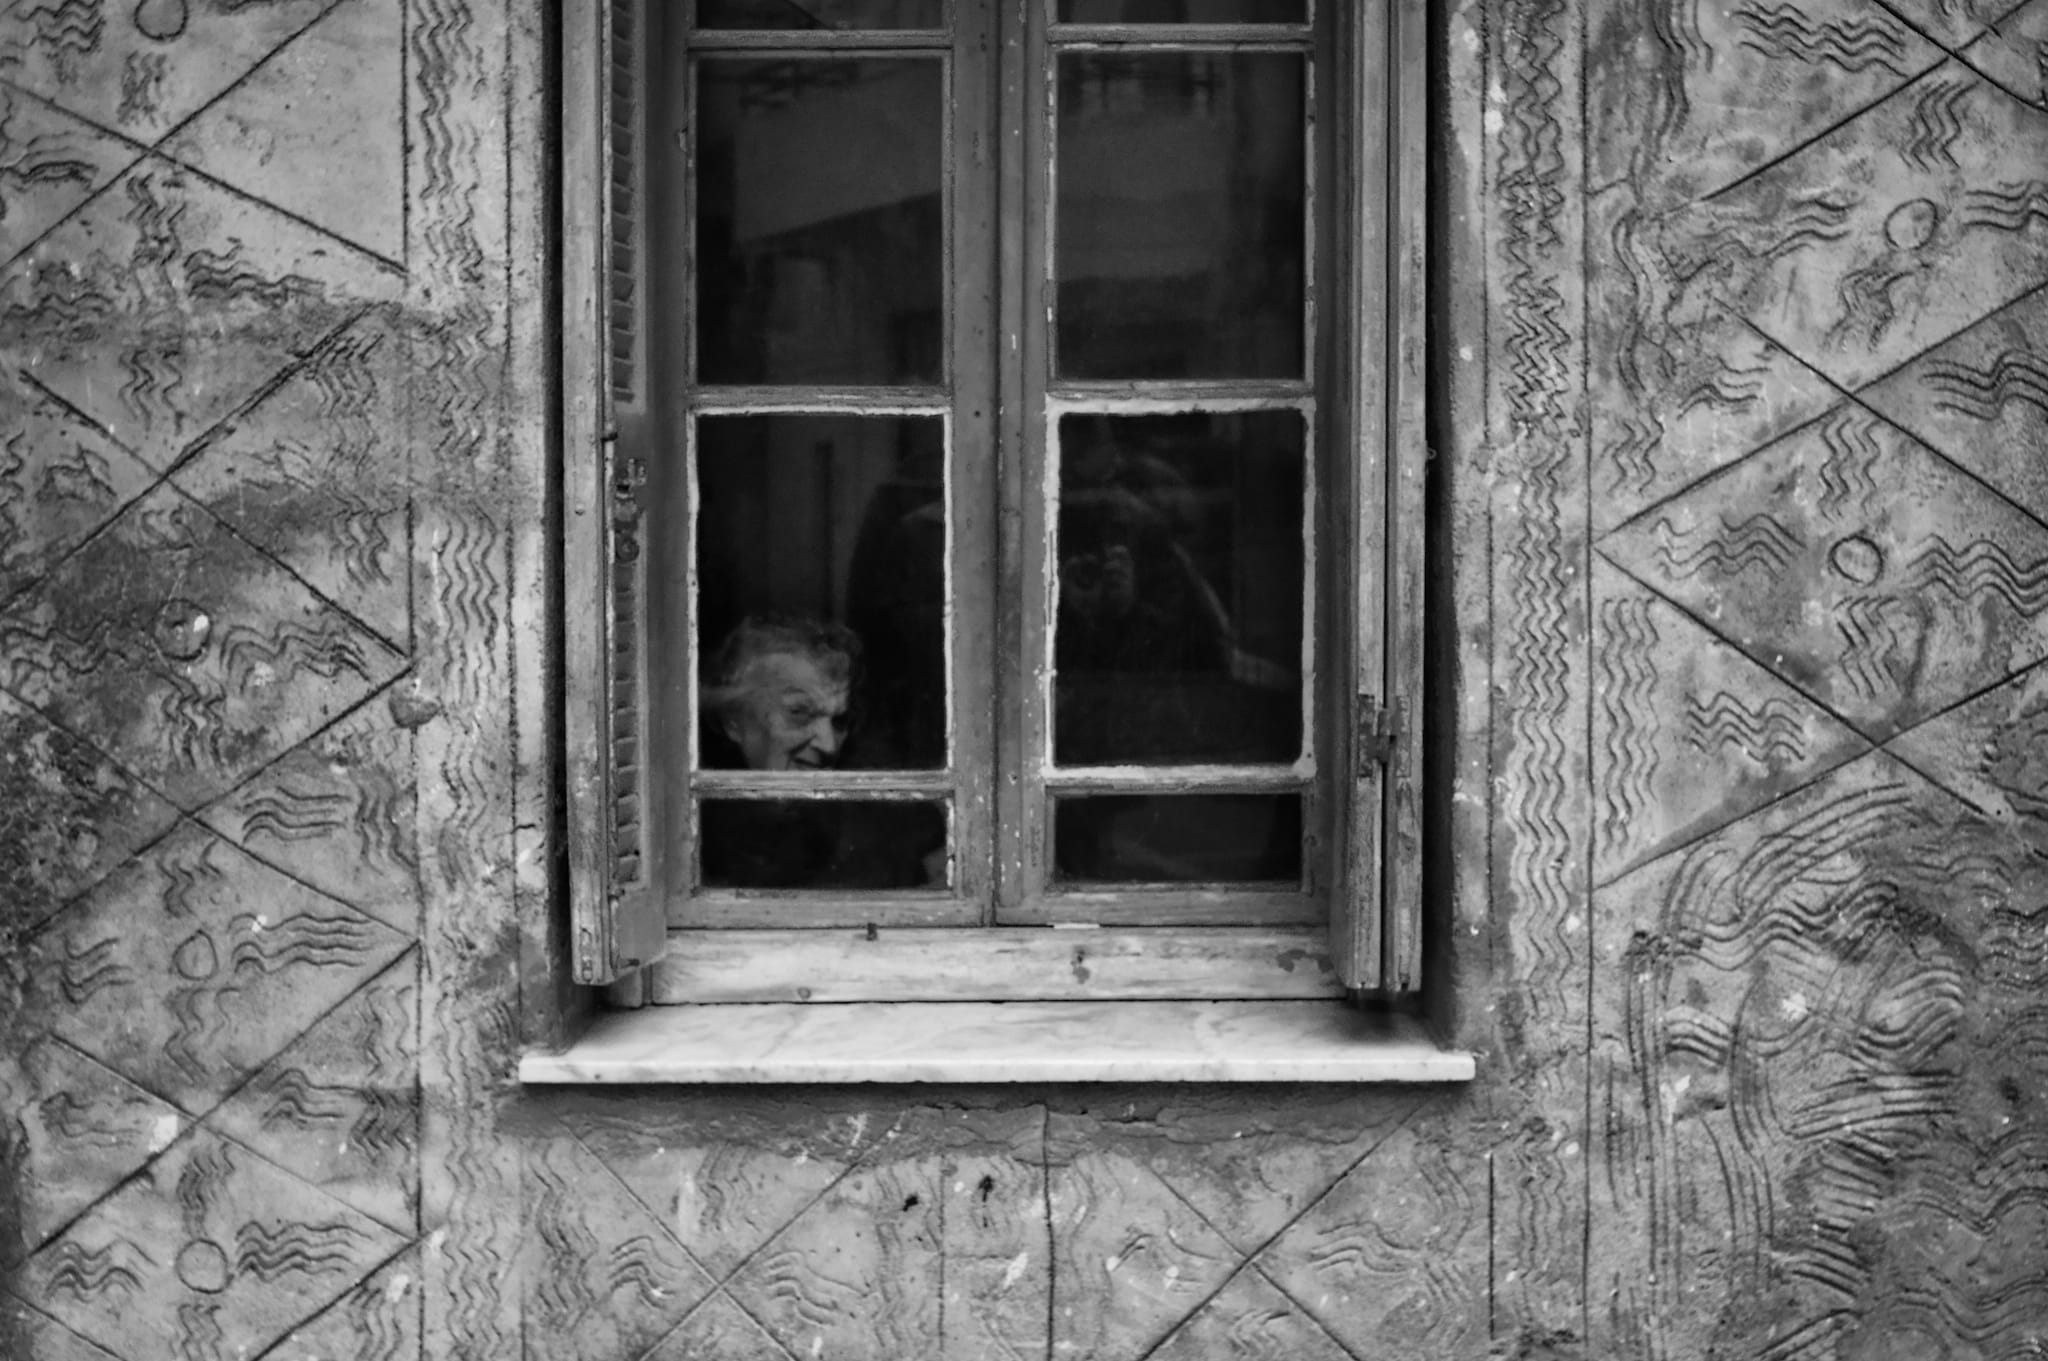 Old woman staring through a window